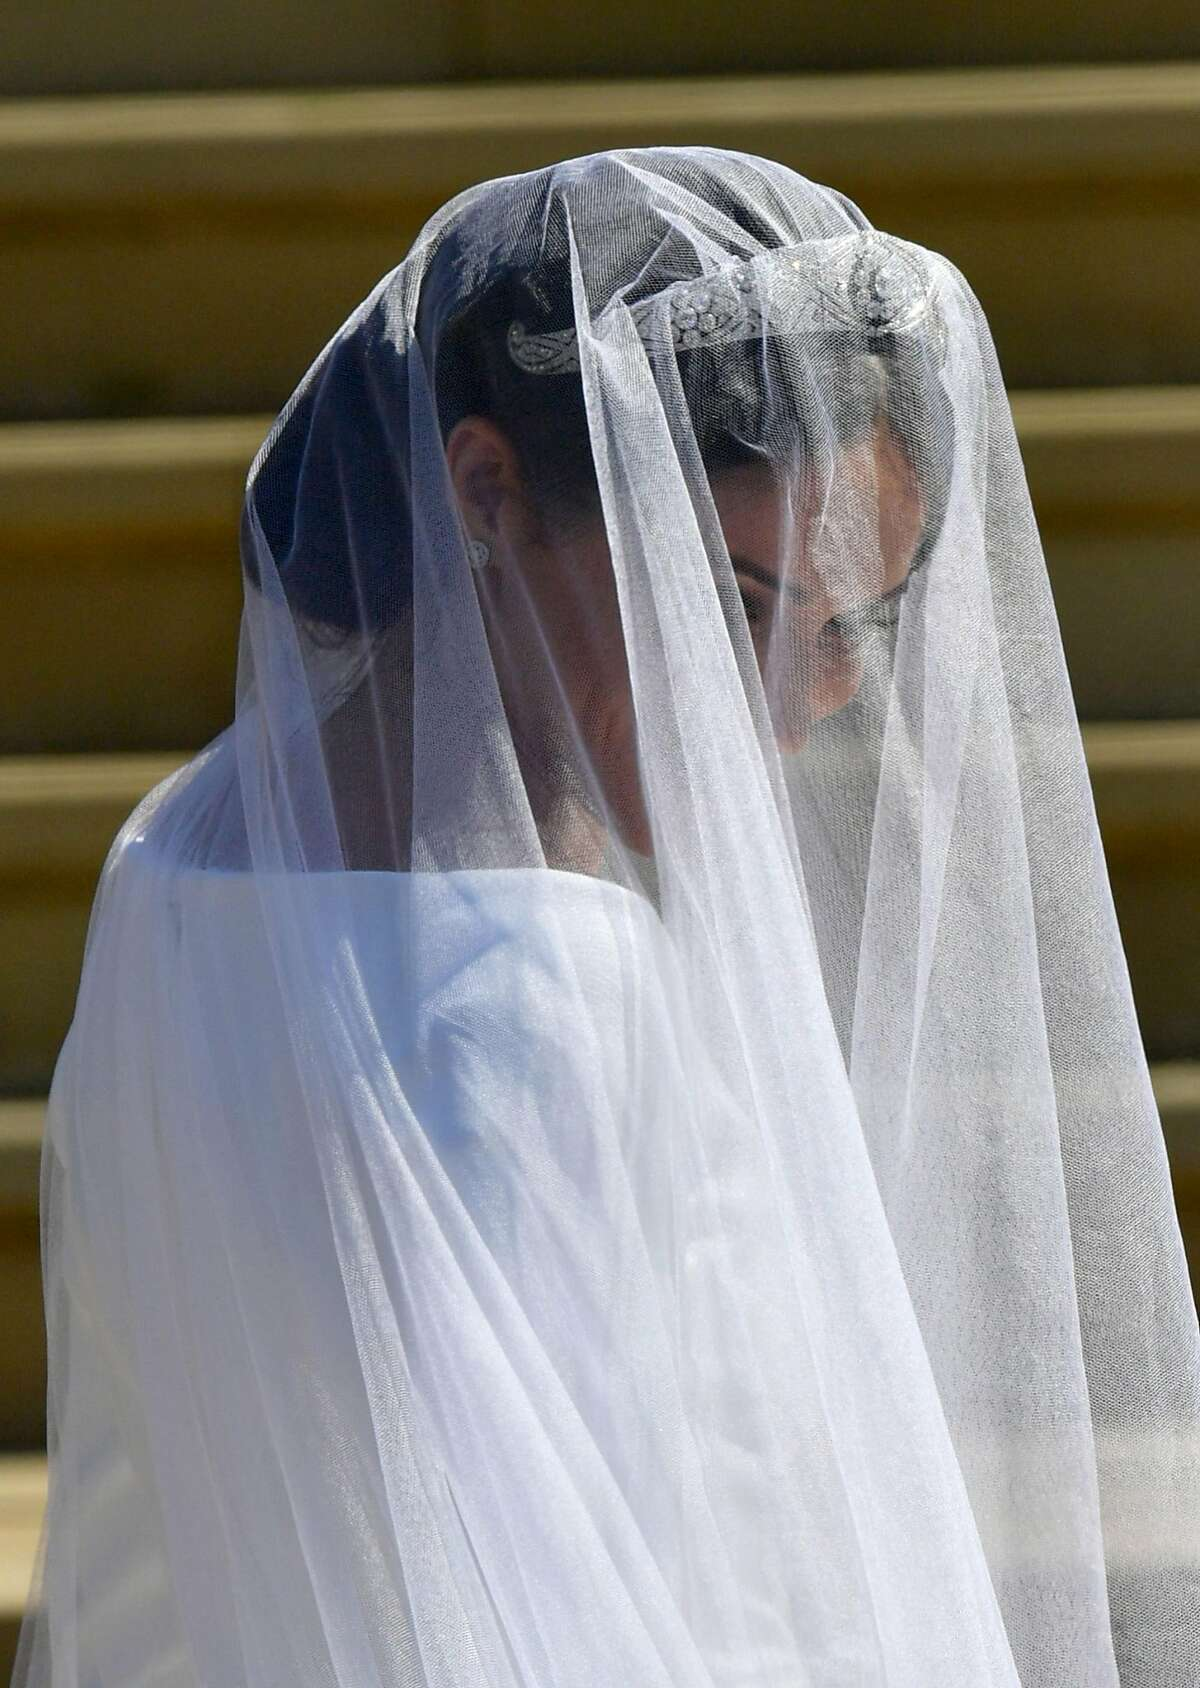 WINDSOR, UNITED KINGDOM - MAY 19: Meghan Markle arrives at St George's Chapel at Windsor Castle for her wedding to Prince Harry on May 19, 2018 in Windsor, England. (Photo by Ben Birchall - WPA Pool/Getty Images)